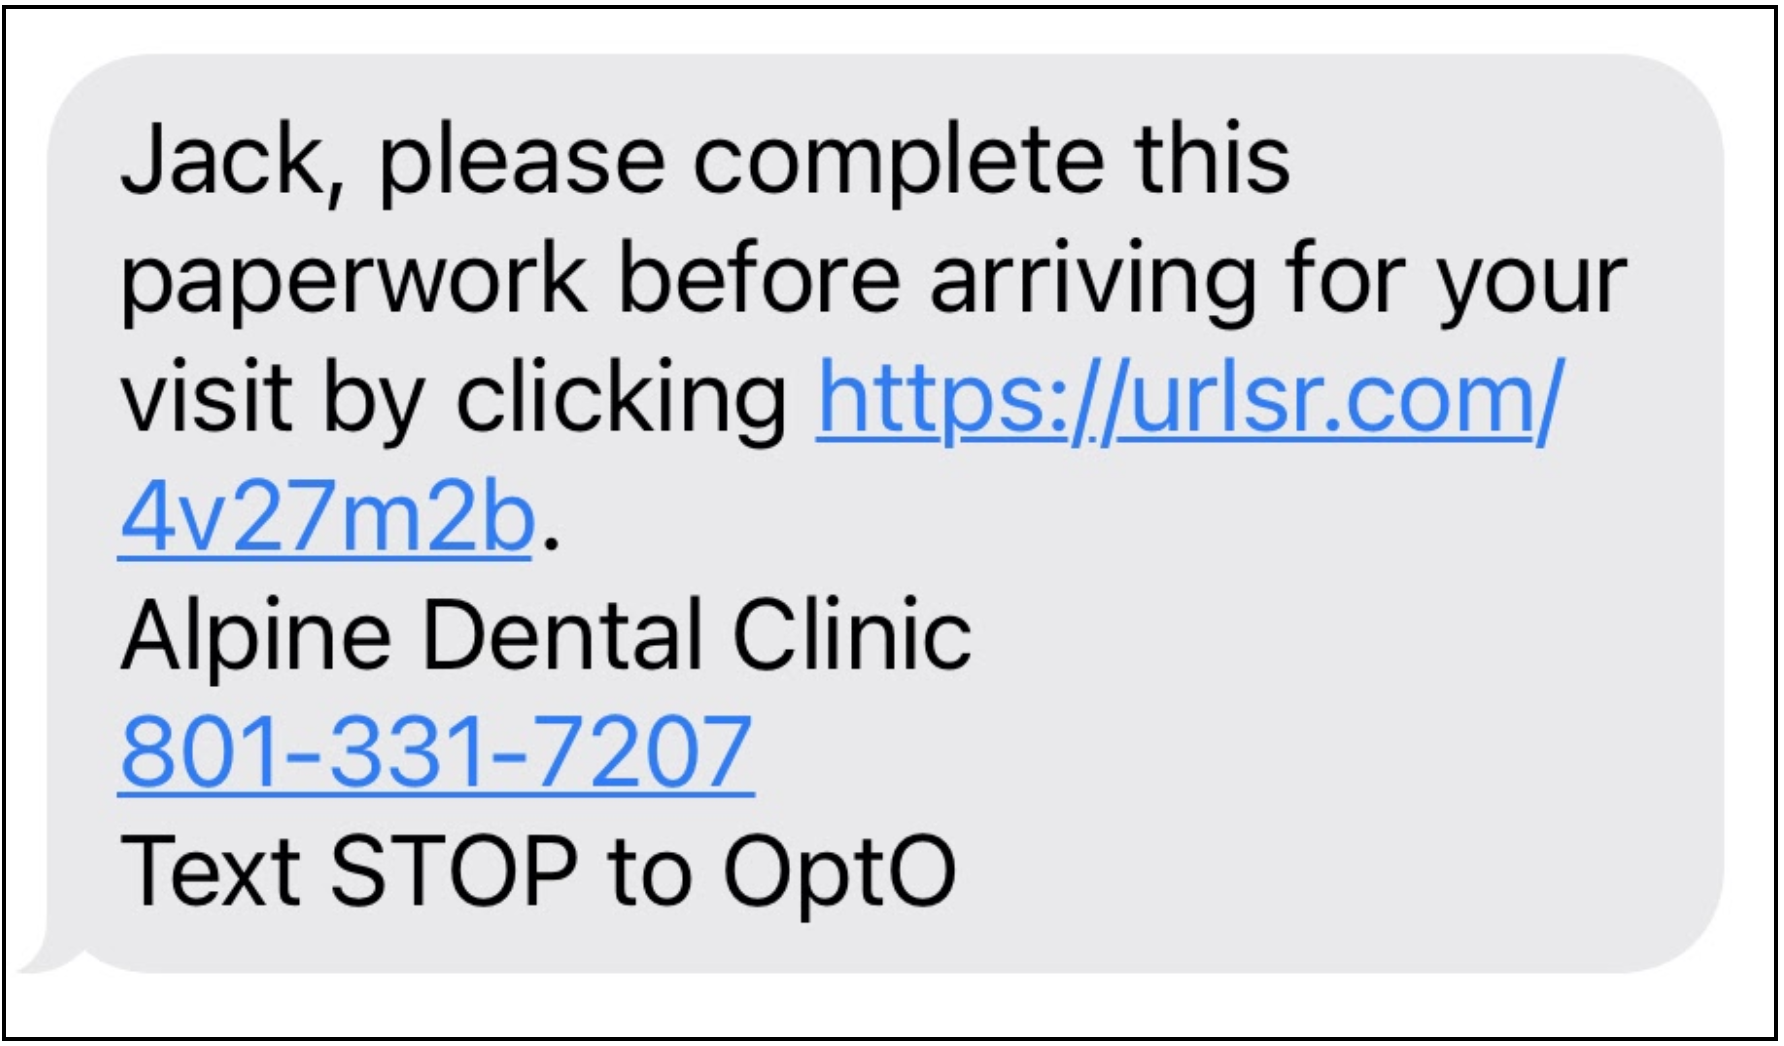 Screenshot of patient-facing text message with intake packet name